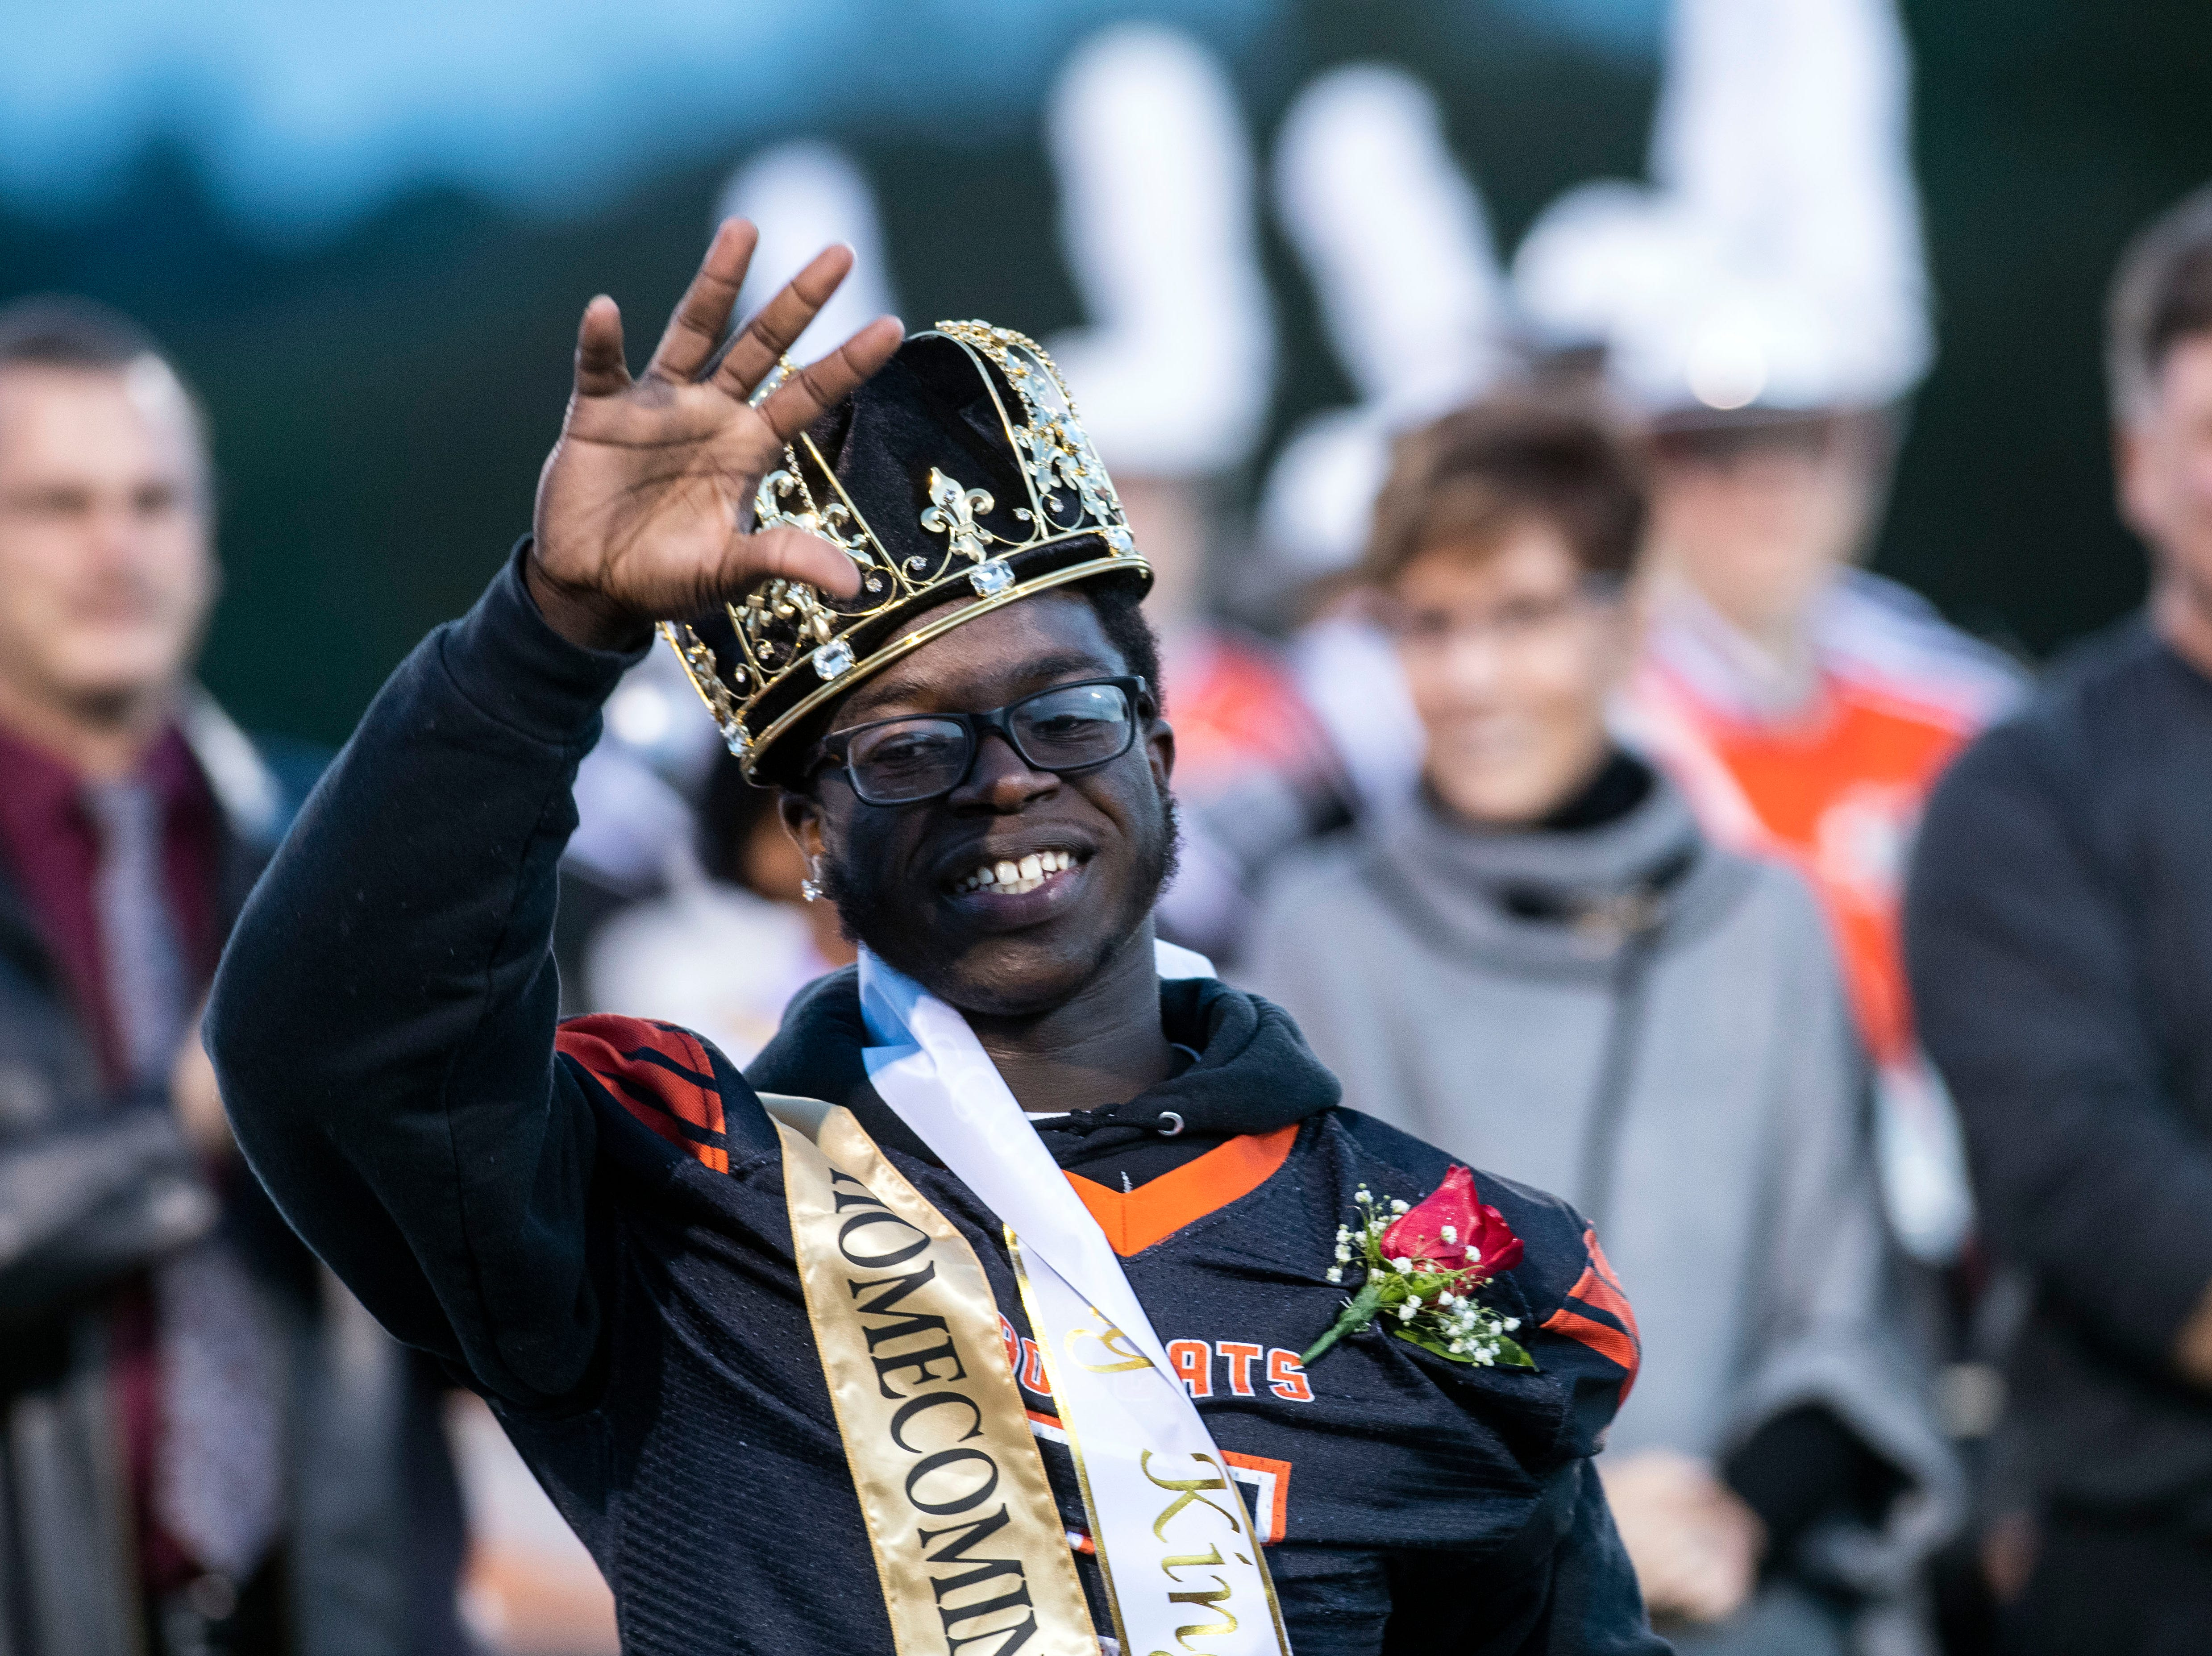 Frank Brown waves to the crowd after winning homecoming king prior to a YAIAA Division I football game at Northeastern High School on Friday, Oct. 12, 2018. The Central York Panthers beat the Northeastern Bobcats, 44-7.